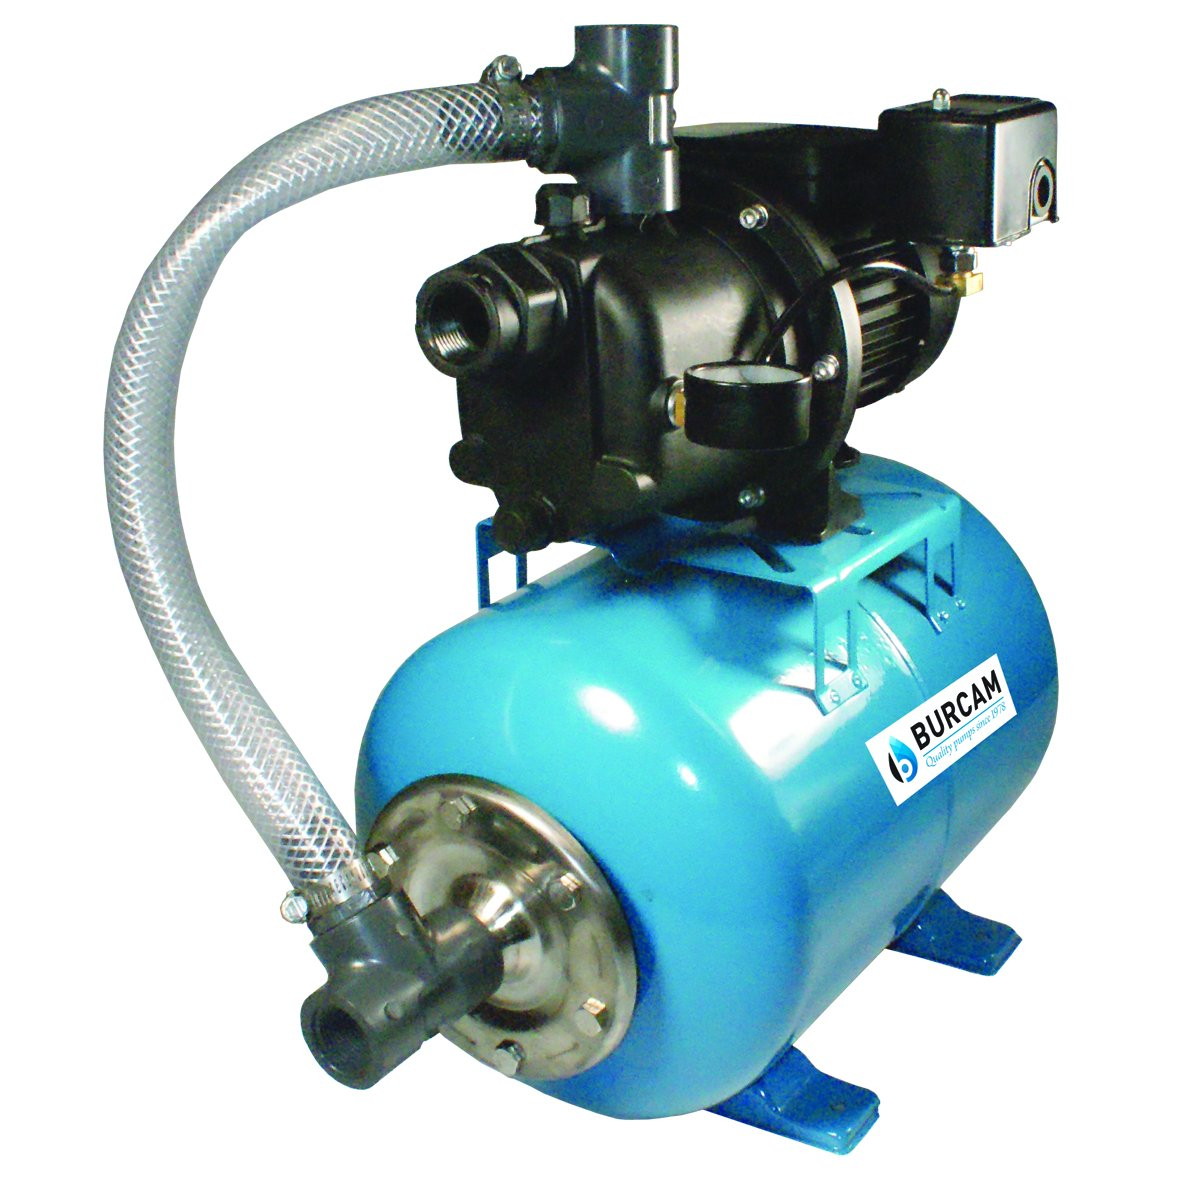 BURCAM 506227P 3/4 HP Noryl Shallow Well Jet Pump System by Bur-Cam